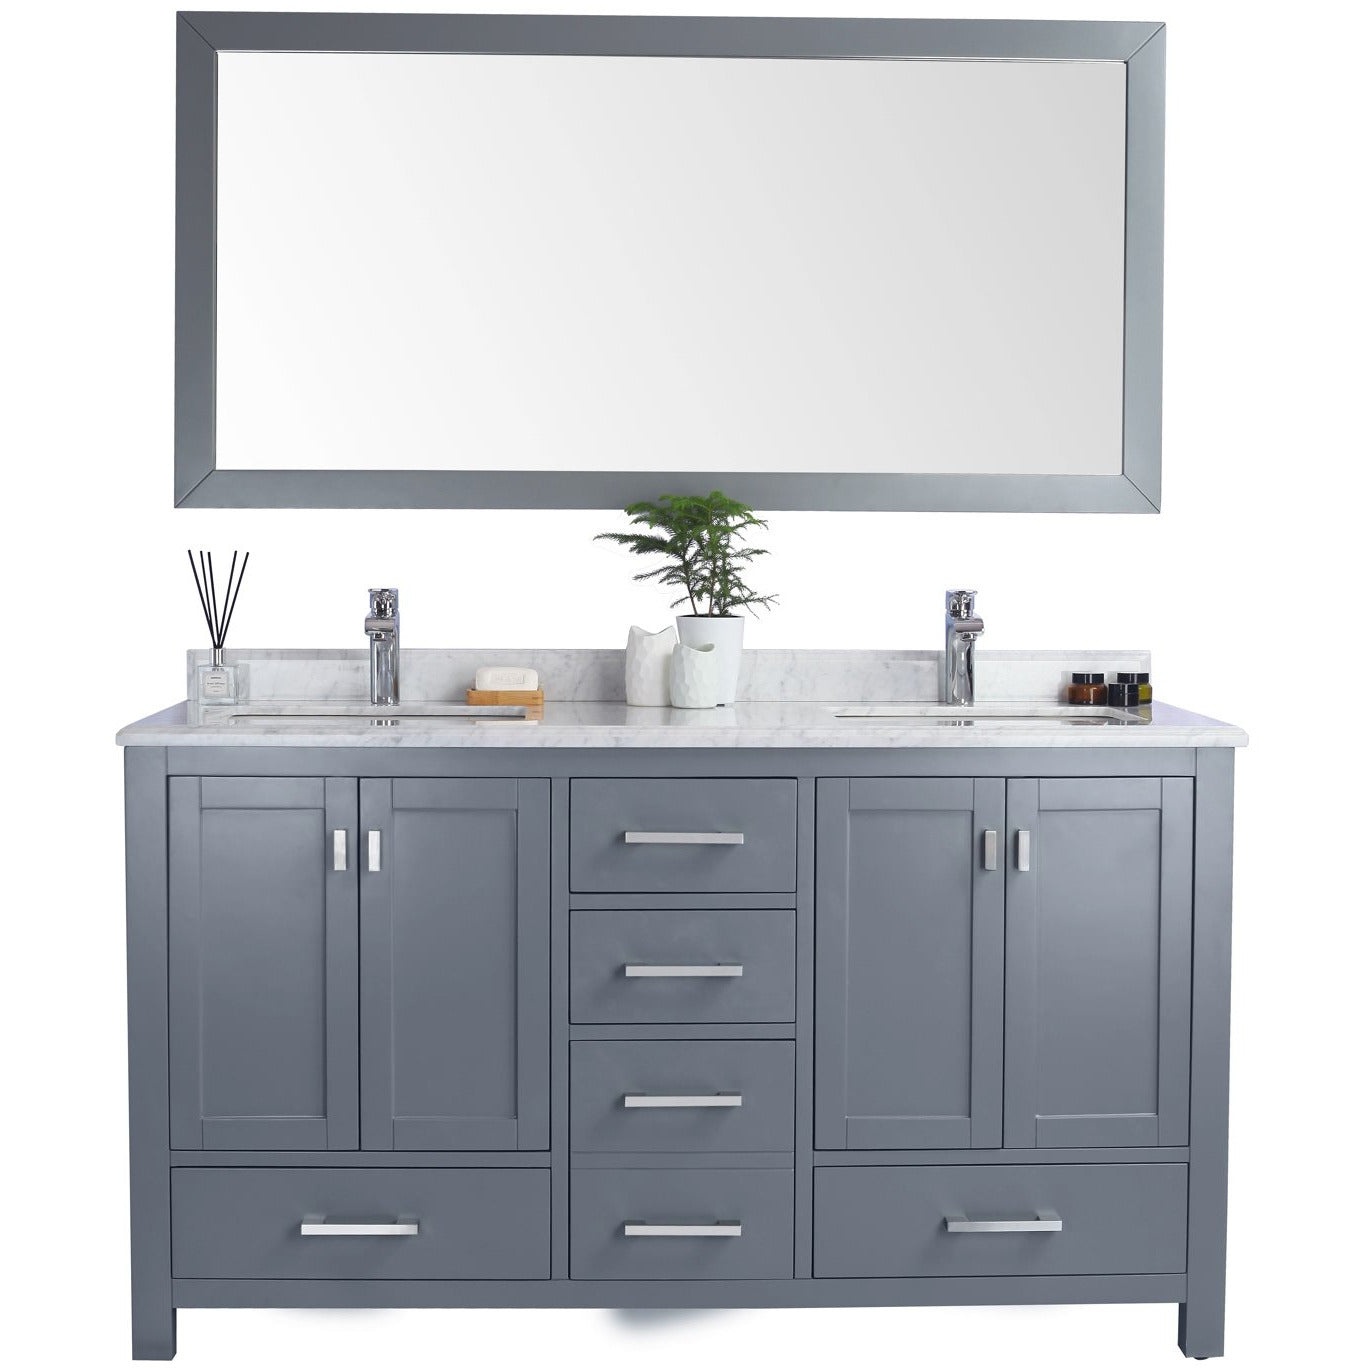 Wilson 60 - Grey Cabinet + White Carrara Countertop by Laviva